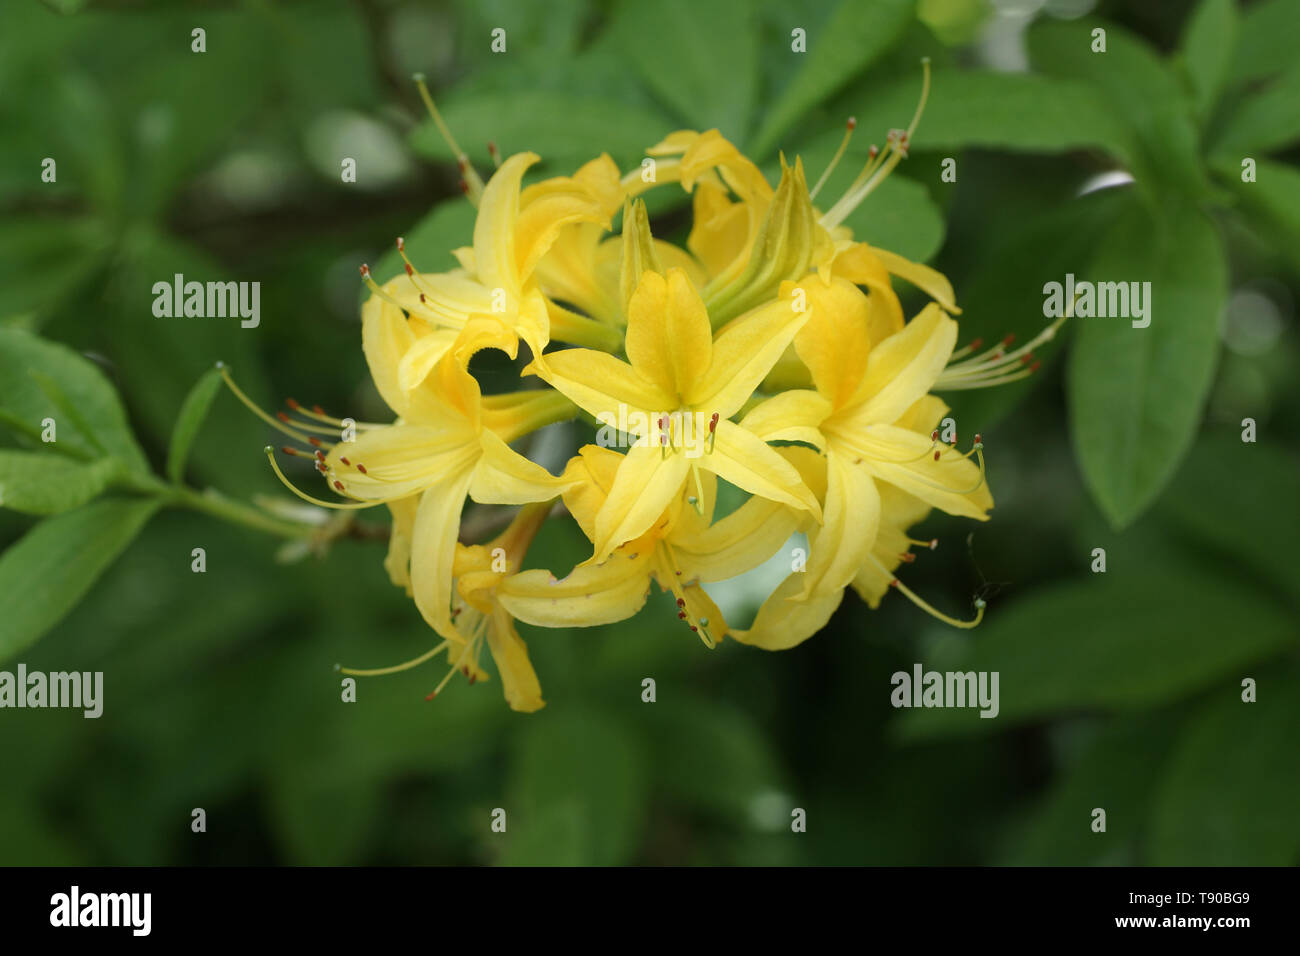 The highly fragrant flowers of Rhododendron luteum - Stock Image